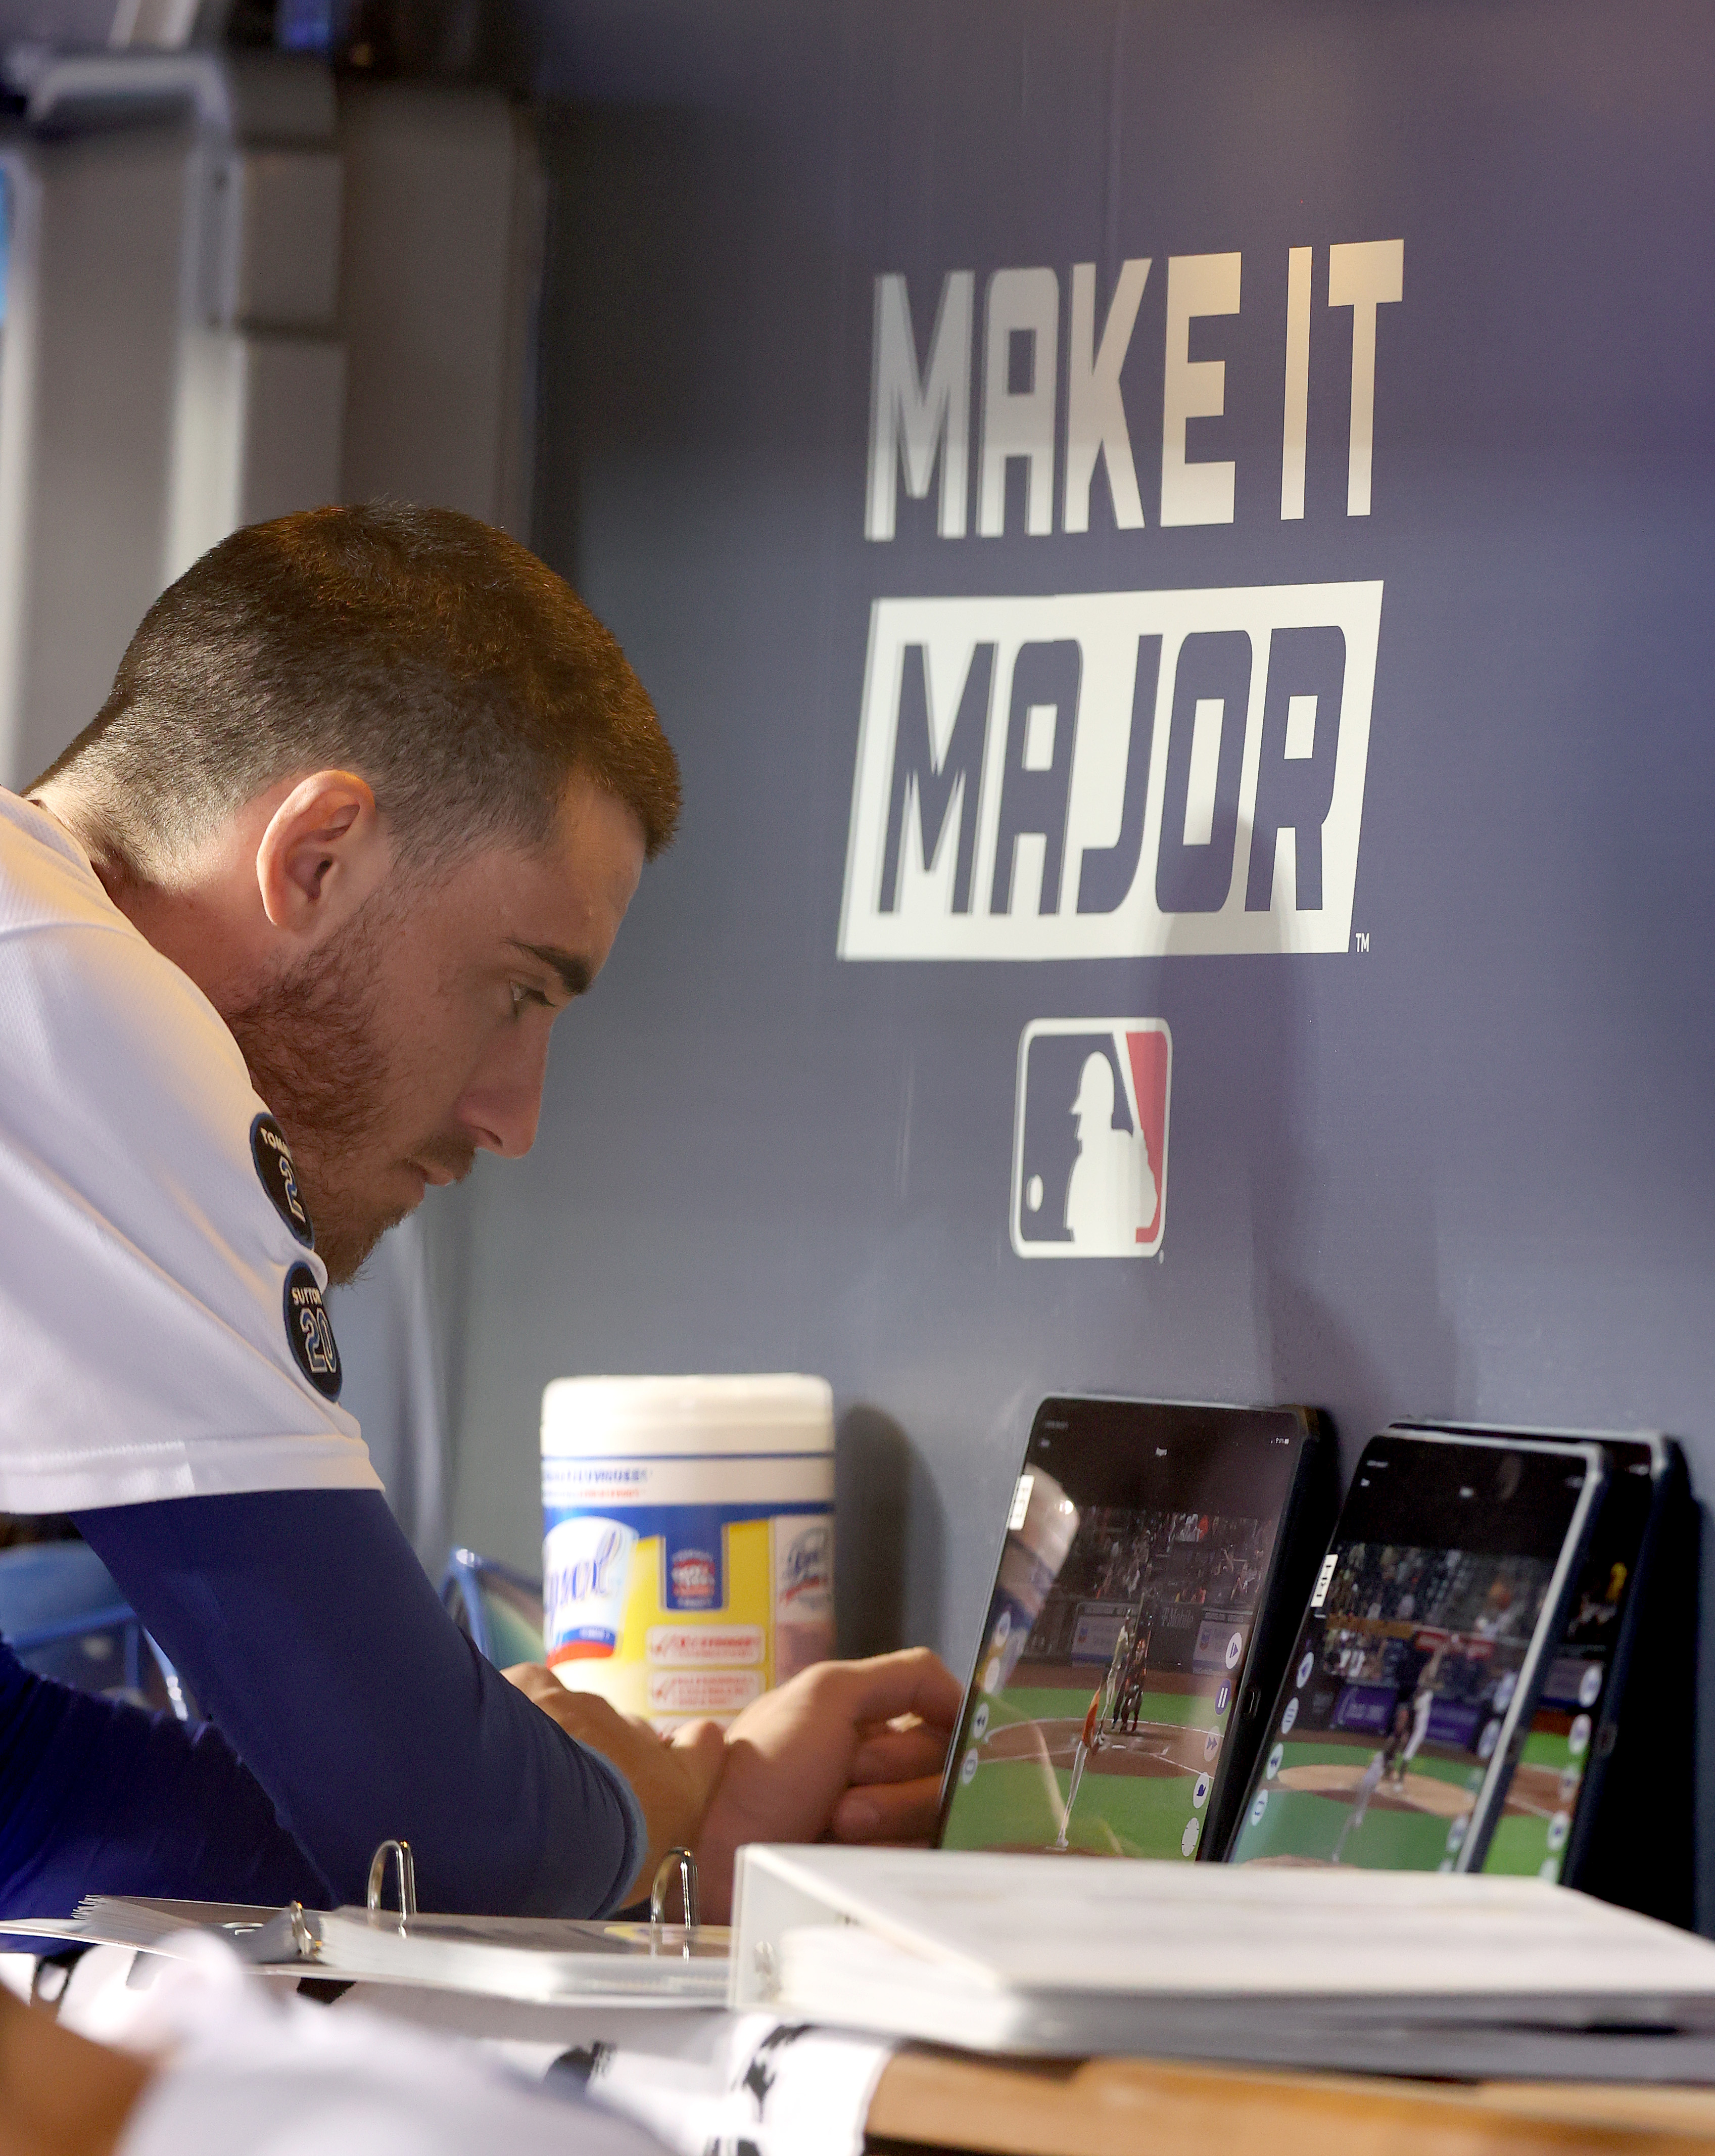 Cody Bellinger #35 of the Los Angeles Dodgers watches a replay against the San Francisco Giants during the fifth inning in game 3 of the National League Division Series at Dodger Stadium